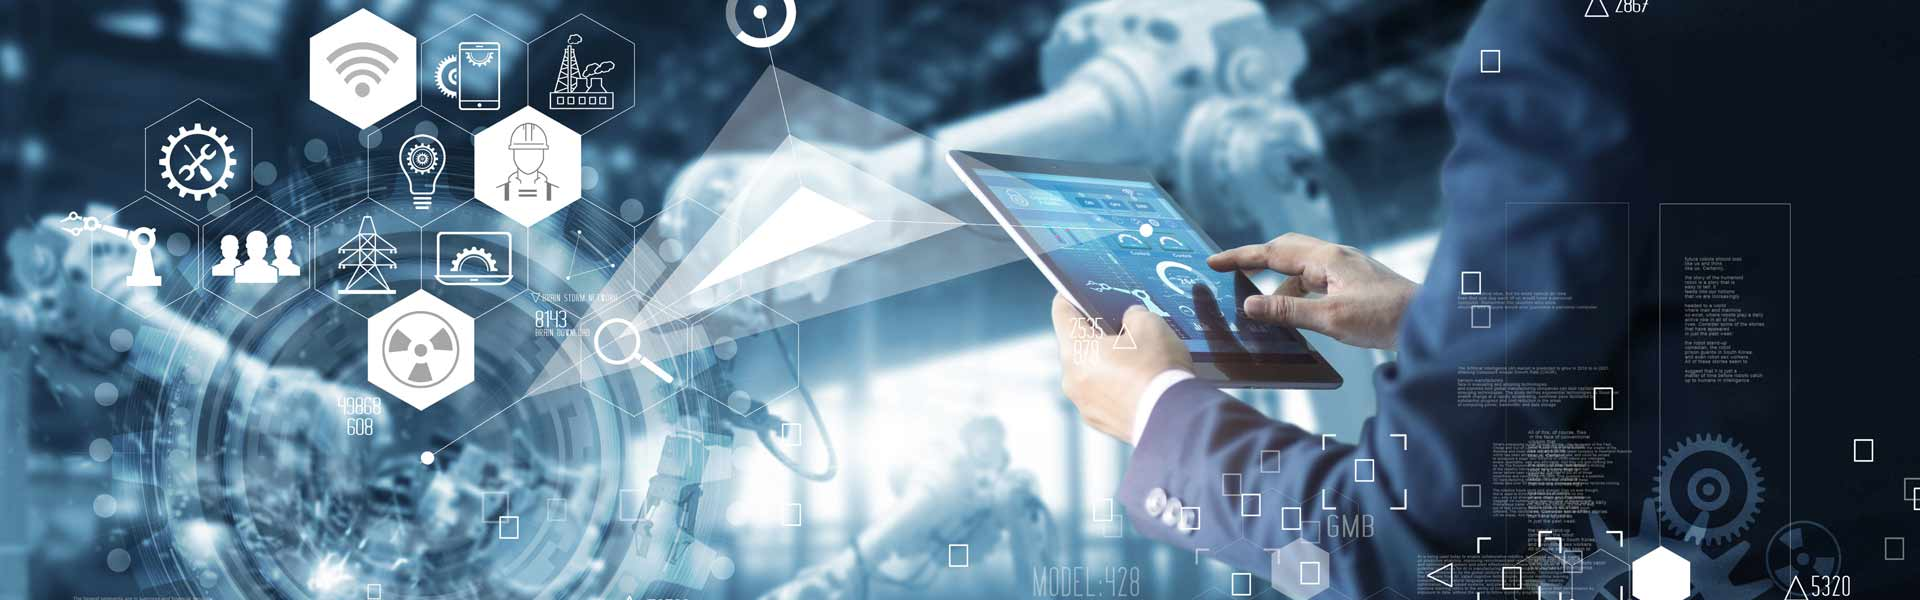 Manufacture Your Own Digital Transformation with Intelligent Enterprise